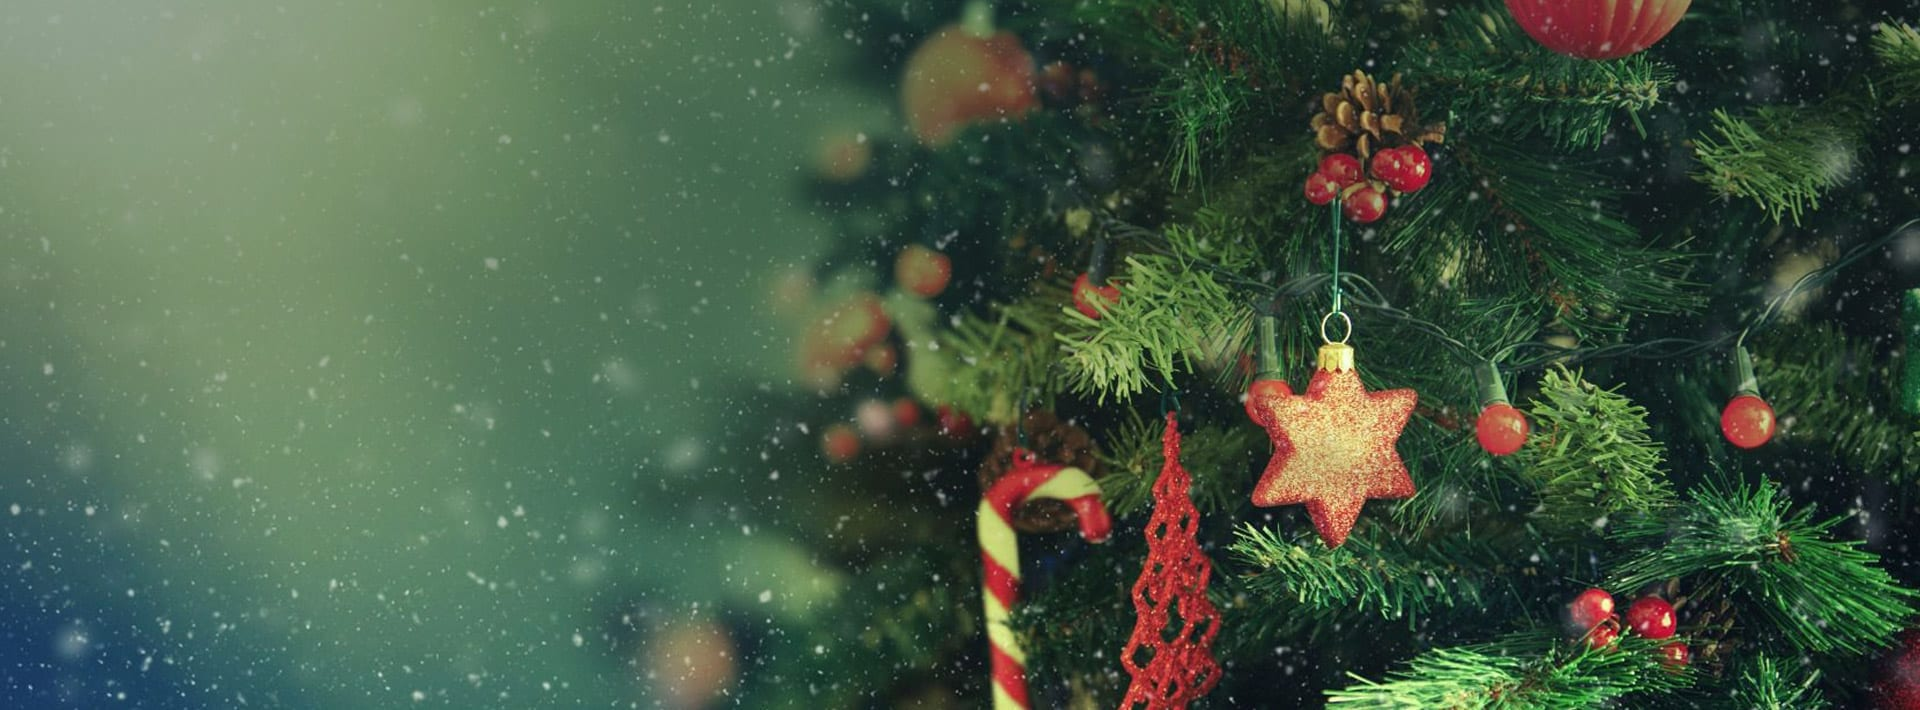 Christmas Gift Vouchers Background Image